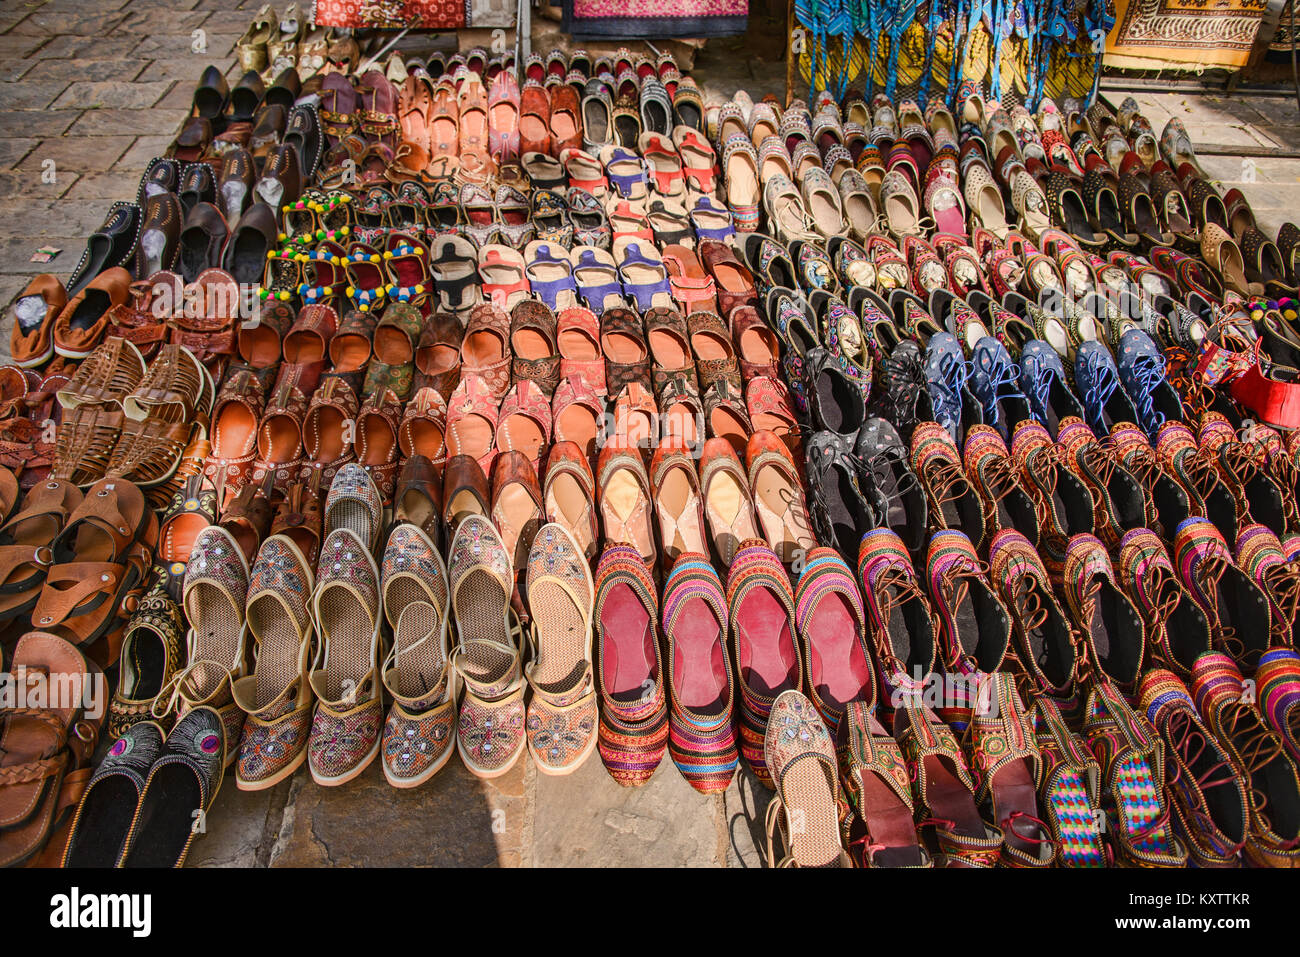 78d98bff4399 Rajasthani Shoes Stock Photos   Rajasthani Shoes Stock Images - Alamy